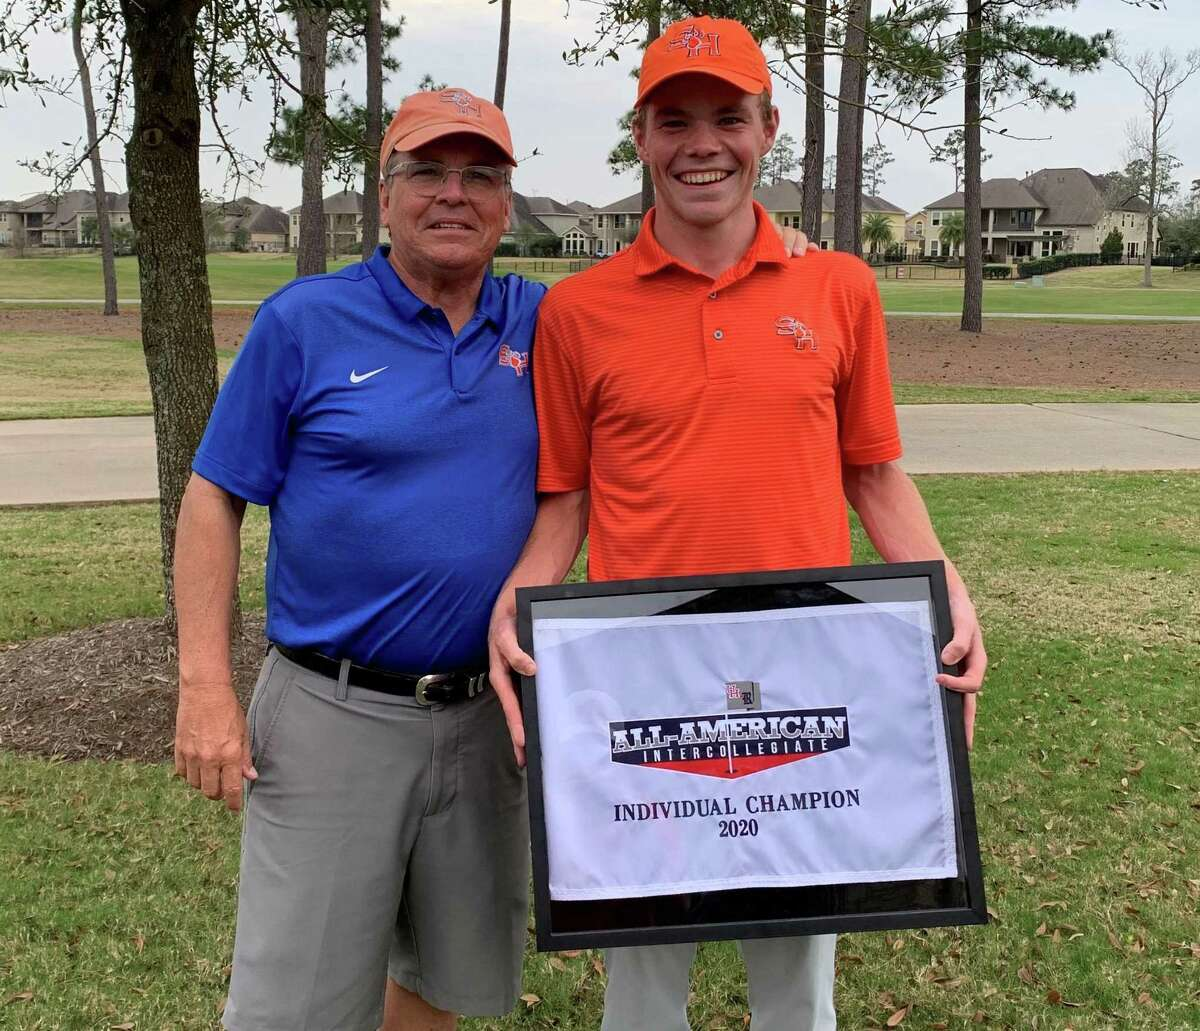 Sam Houston State golfer Jack Randle, right, won the All-American Intercollegiate hosted by the University of Houston on Tuesday, Feb. 18, 2020.